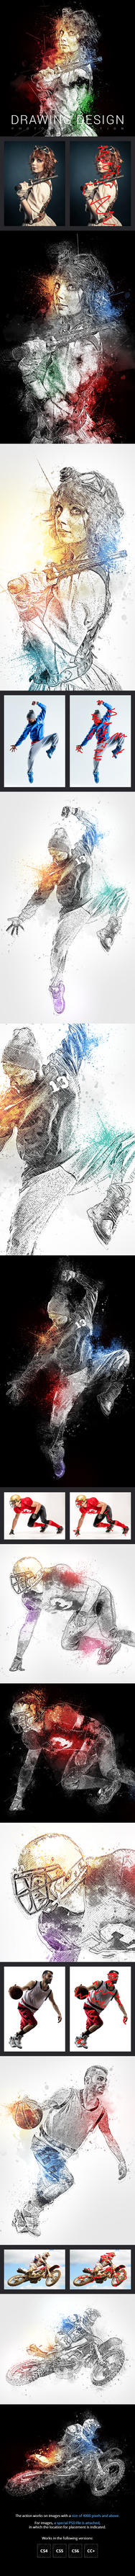 Drawing Design Photoshop Action by GraphicAssets